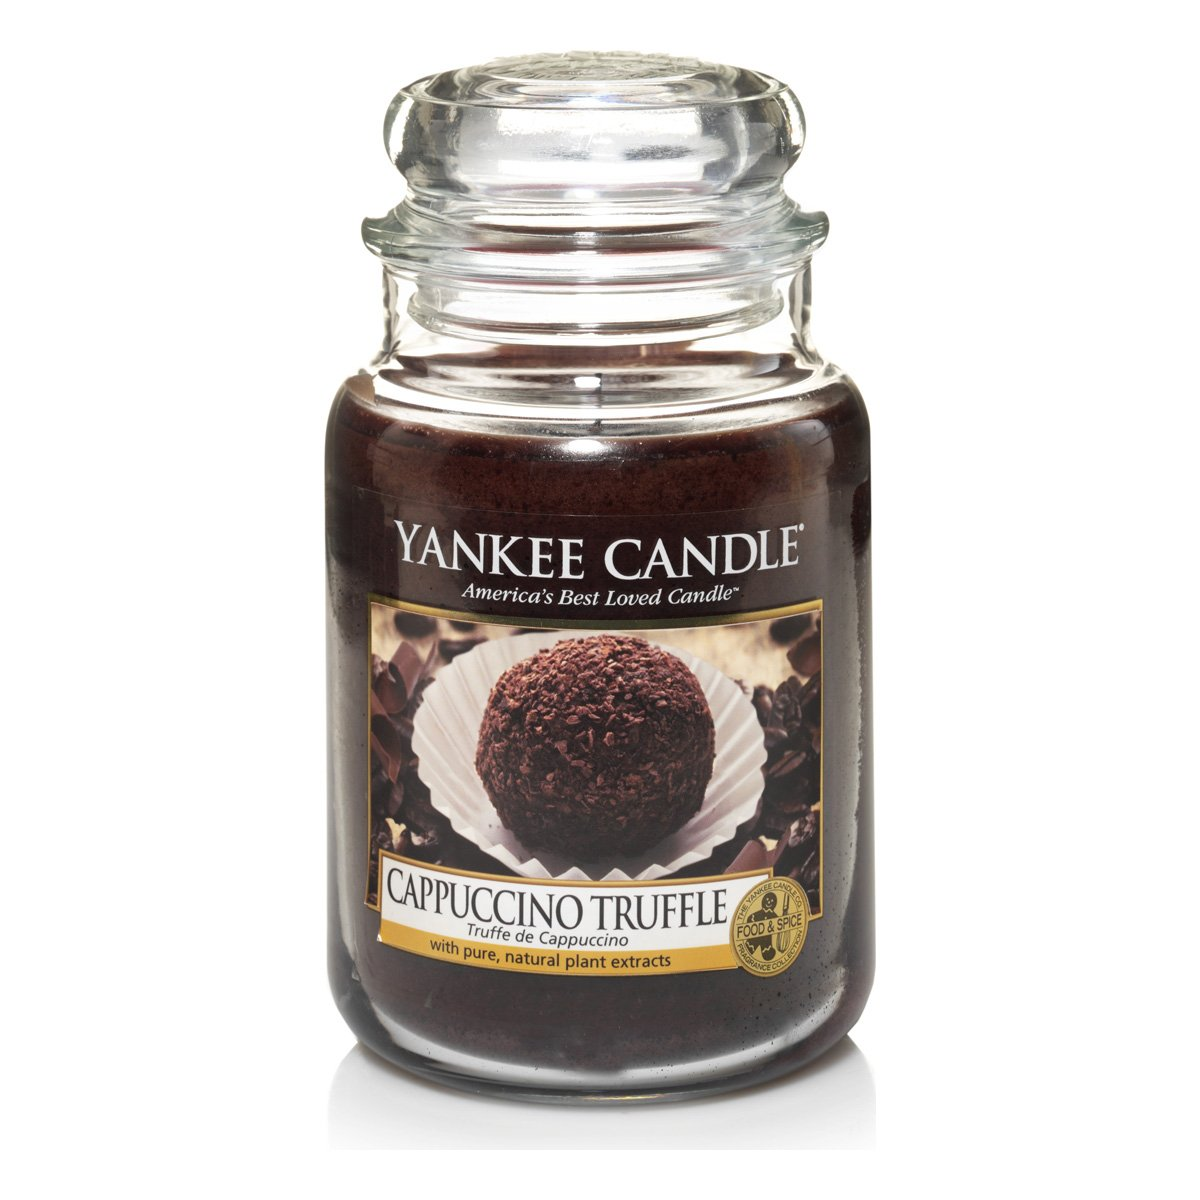 Yankee Candles Large Jar Candle - Cappuccino Truffle